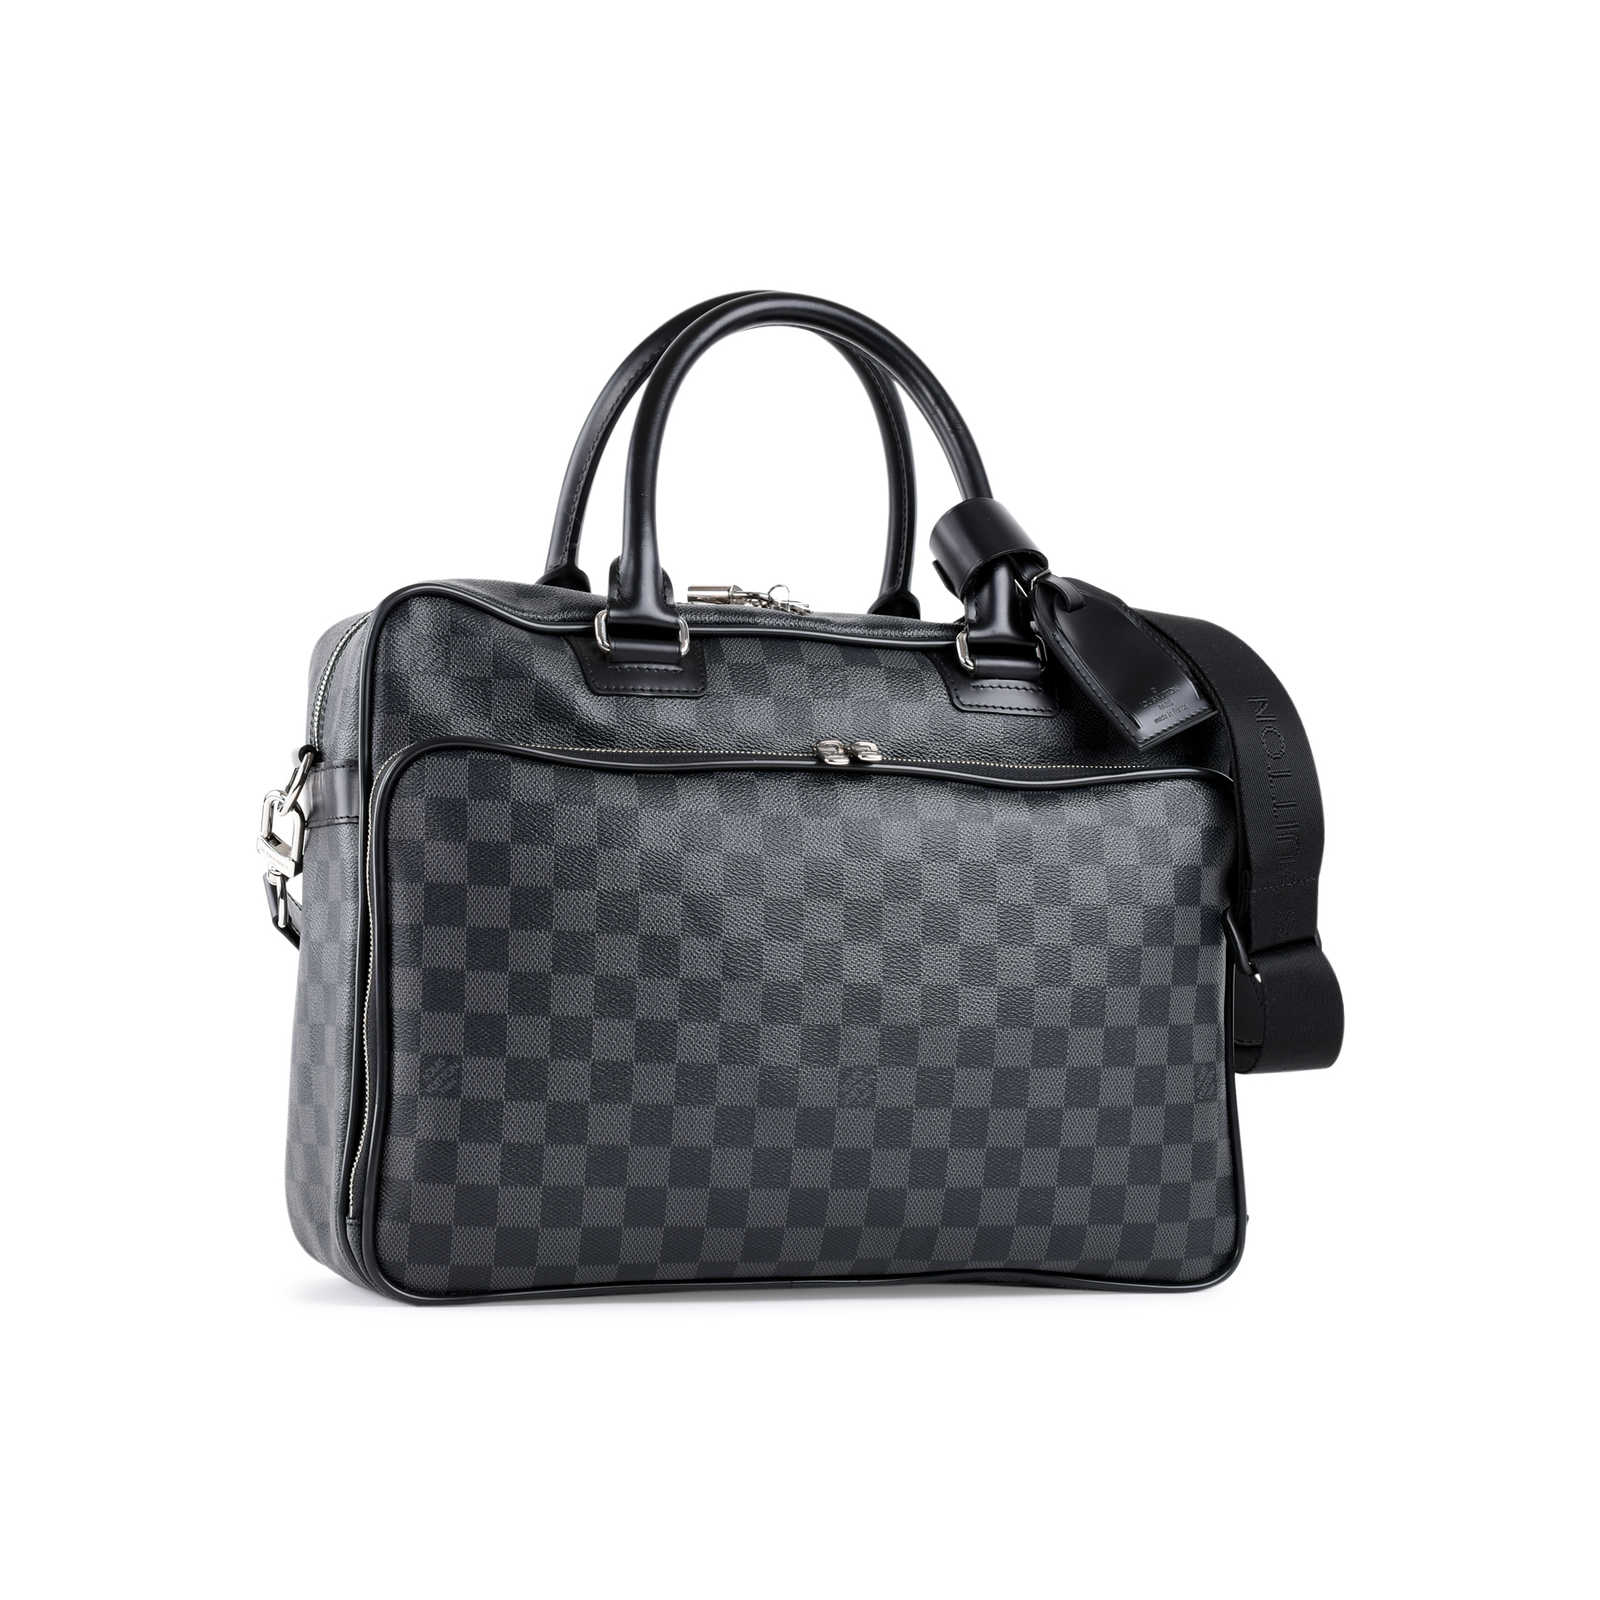 5309e45c718 ... Authentic Second Hand Louis Vuitton Icare Damier Graphite Bag  (PSS-462-00052) ...